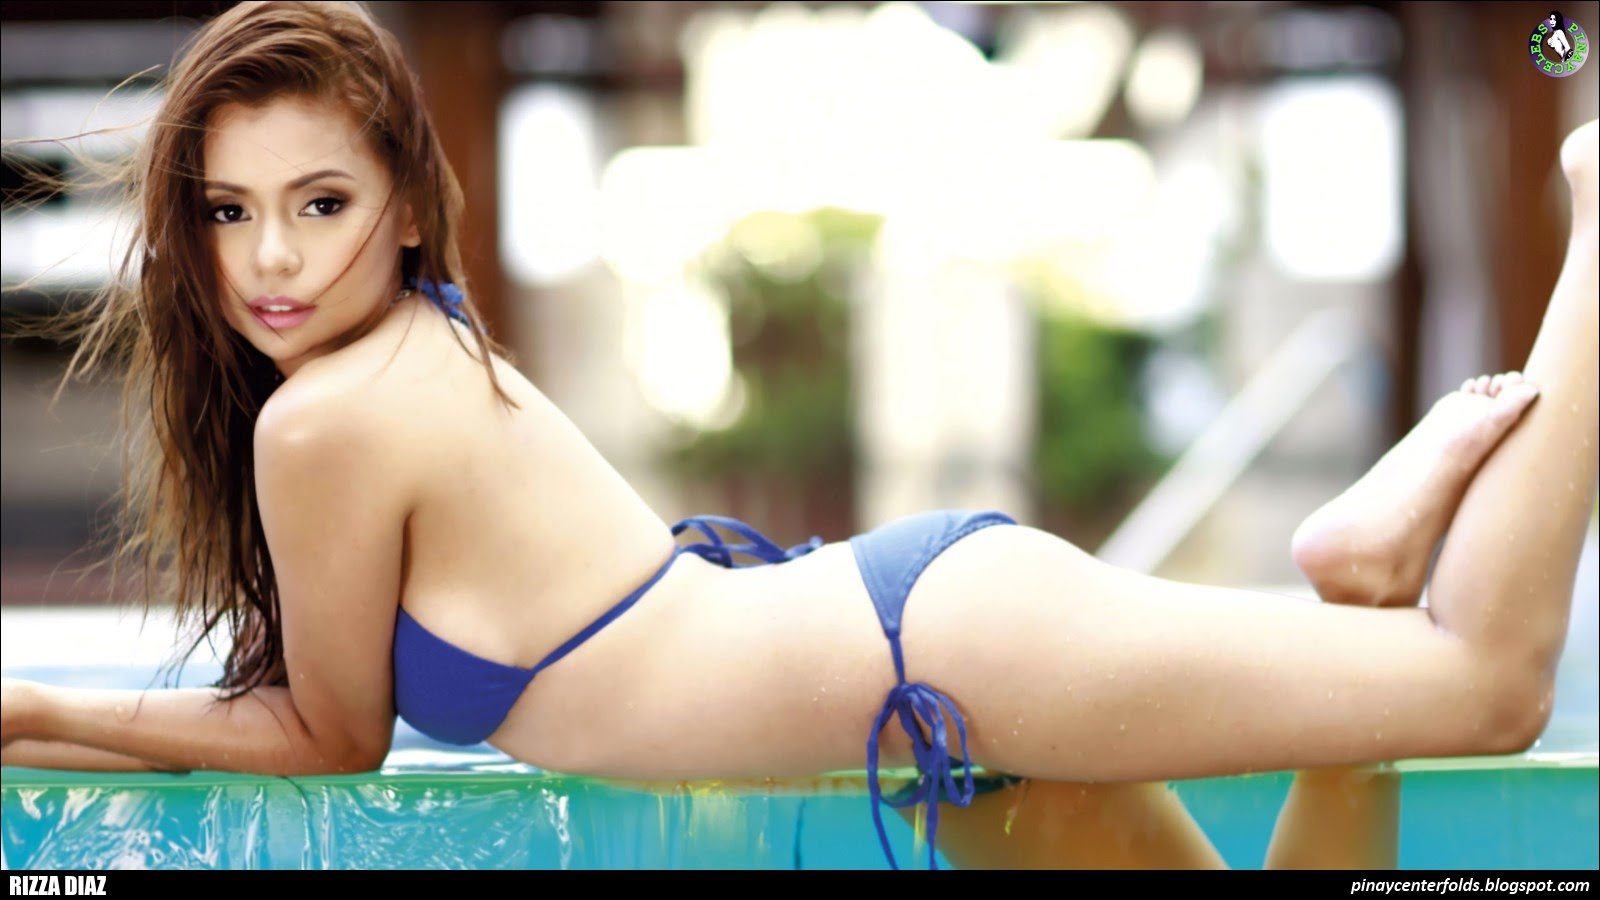 Rizza Diaz In FHM 2